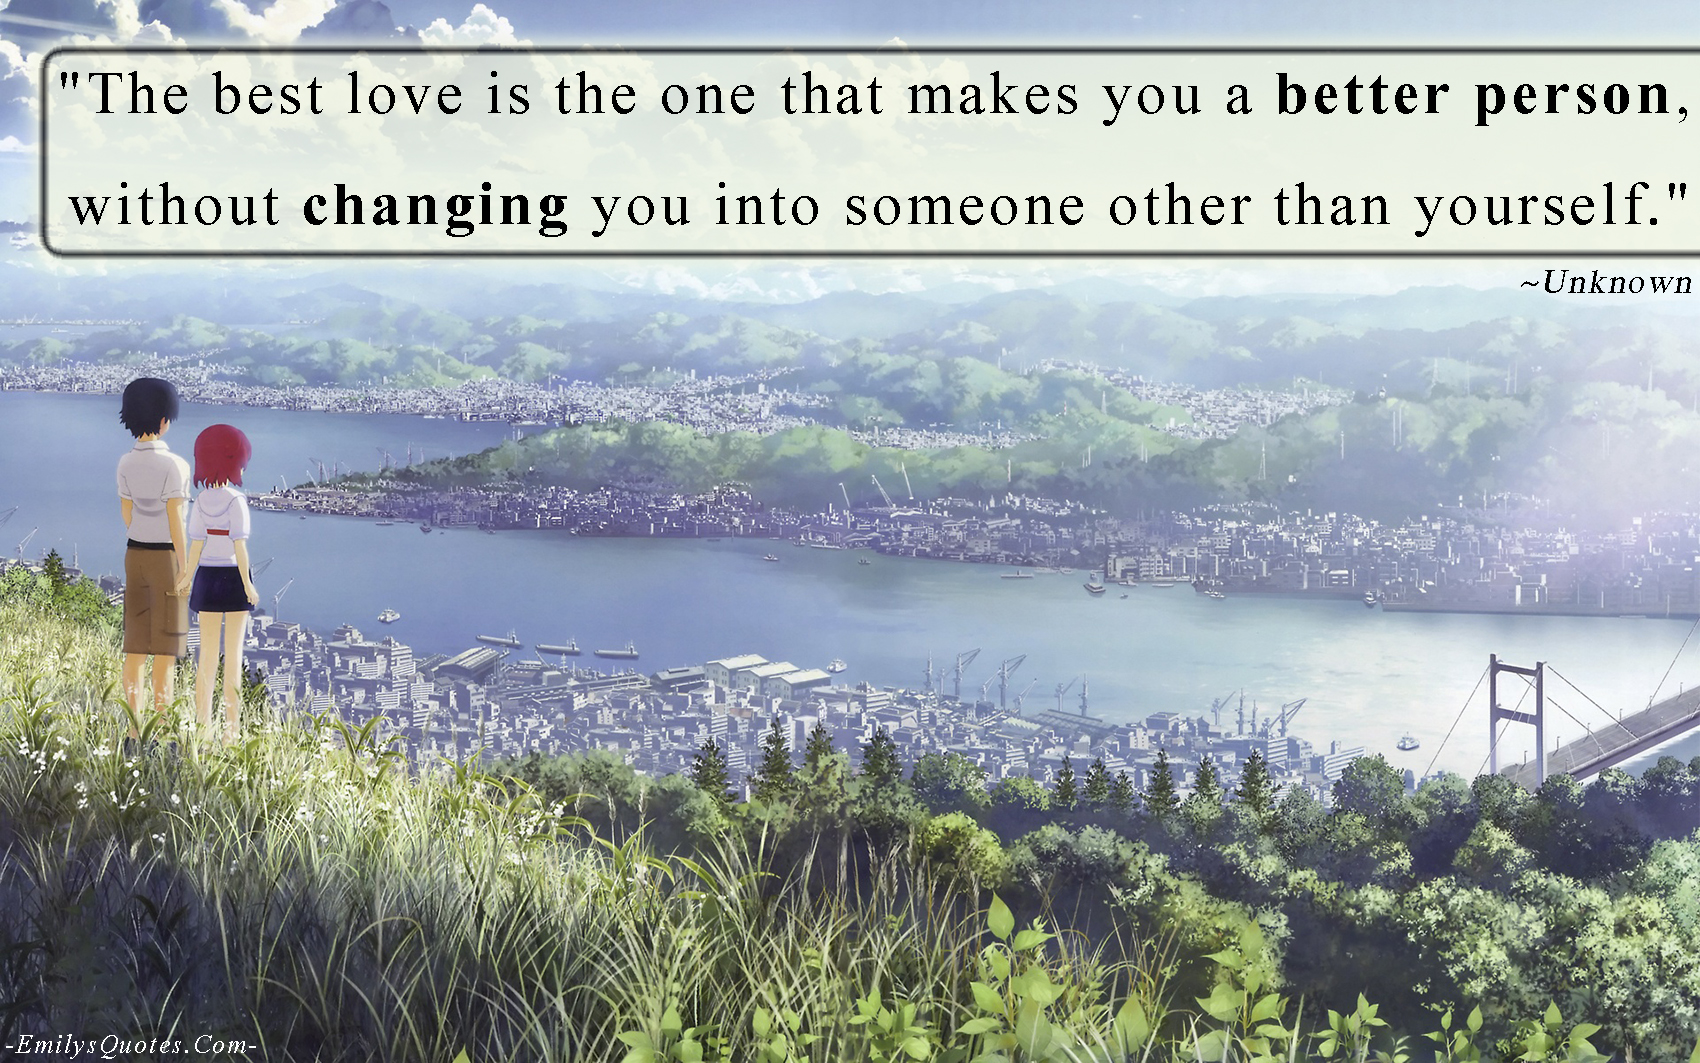 Changing For The One You Love Quotes The Best Love is The One That